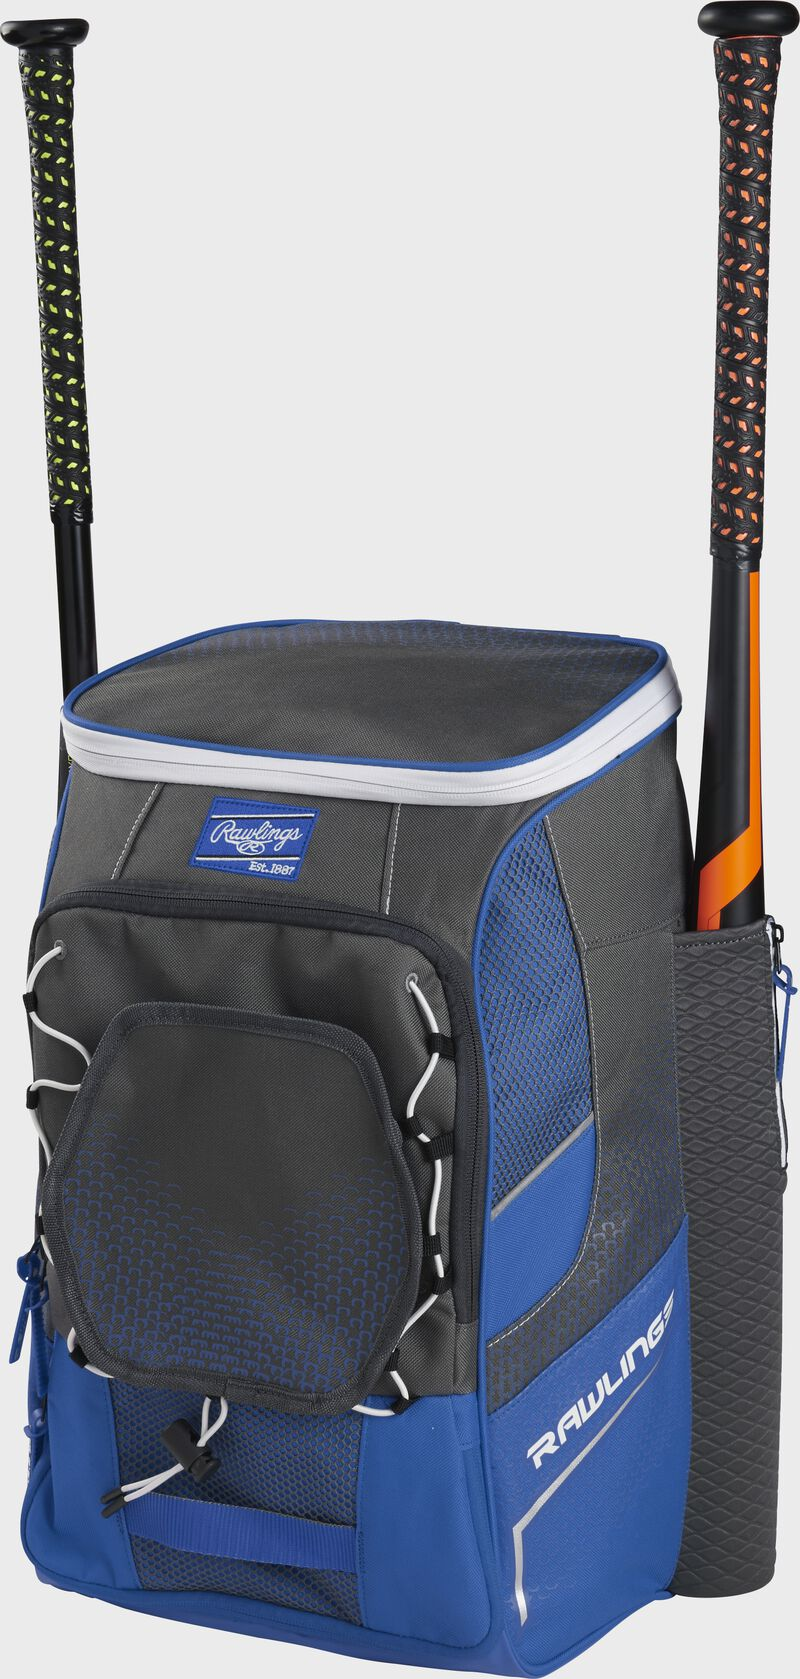 Front right angle view of a royal Impulse backpack with two bats in the side sleeves - SKU: IMPLSE-R